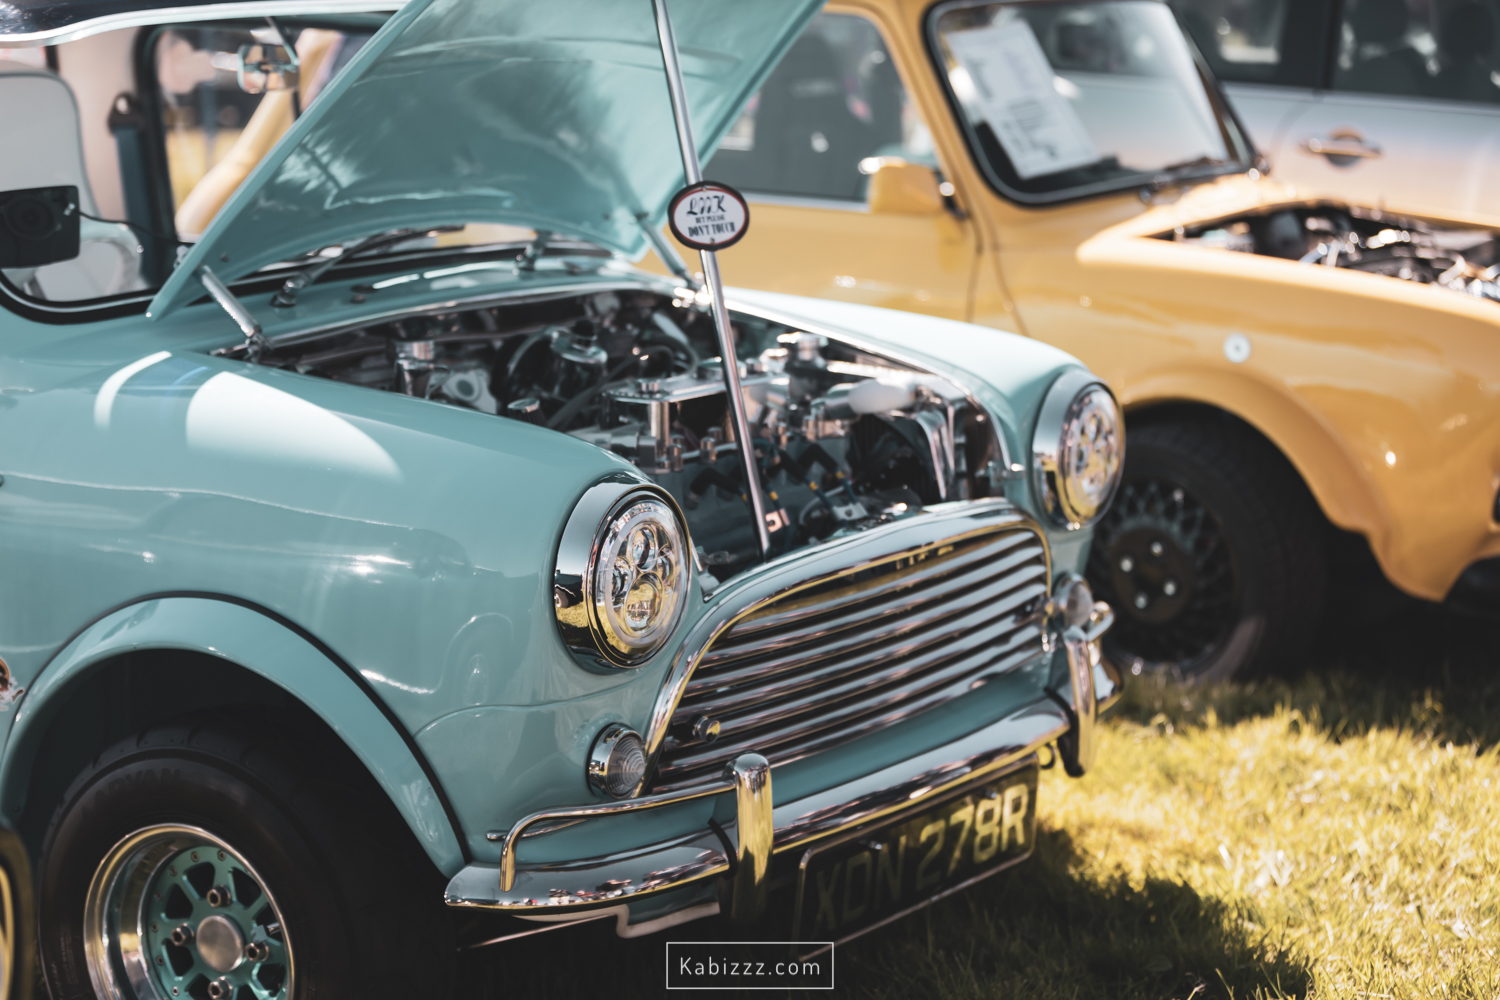 Kabizzz_Photography_Stirling_District_Classic _cars-29.jpg